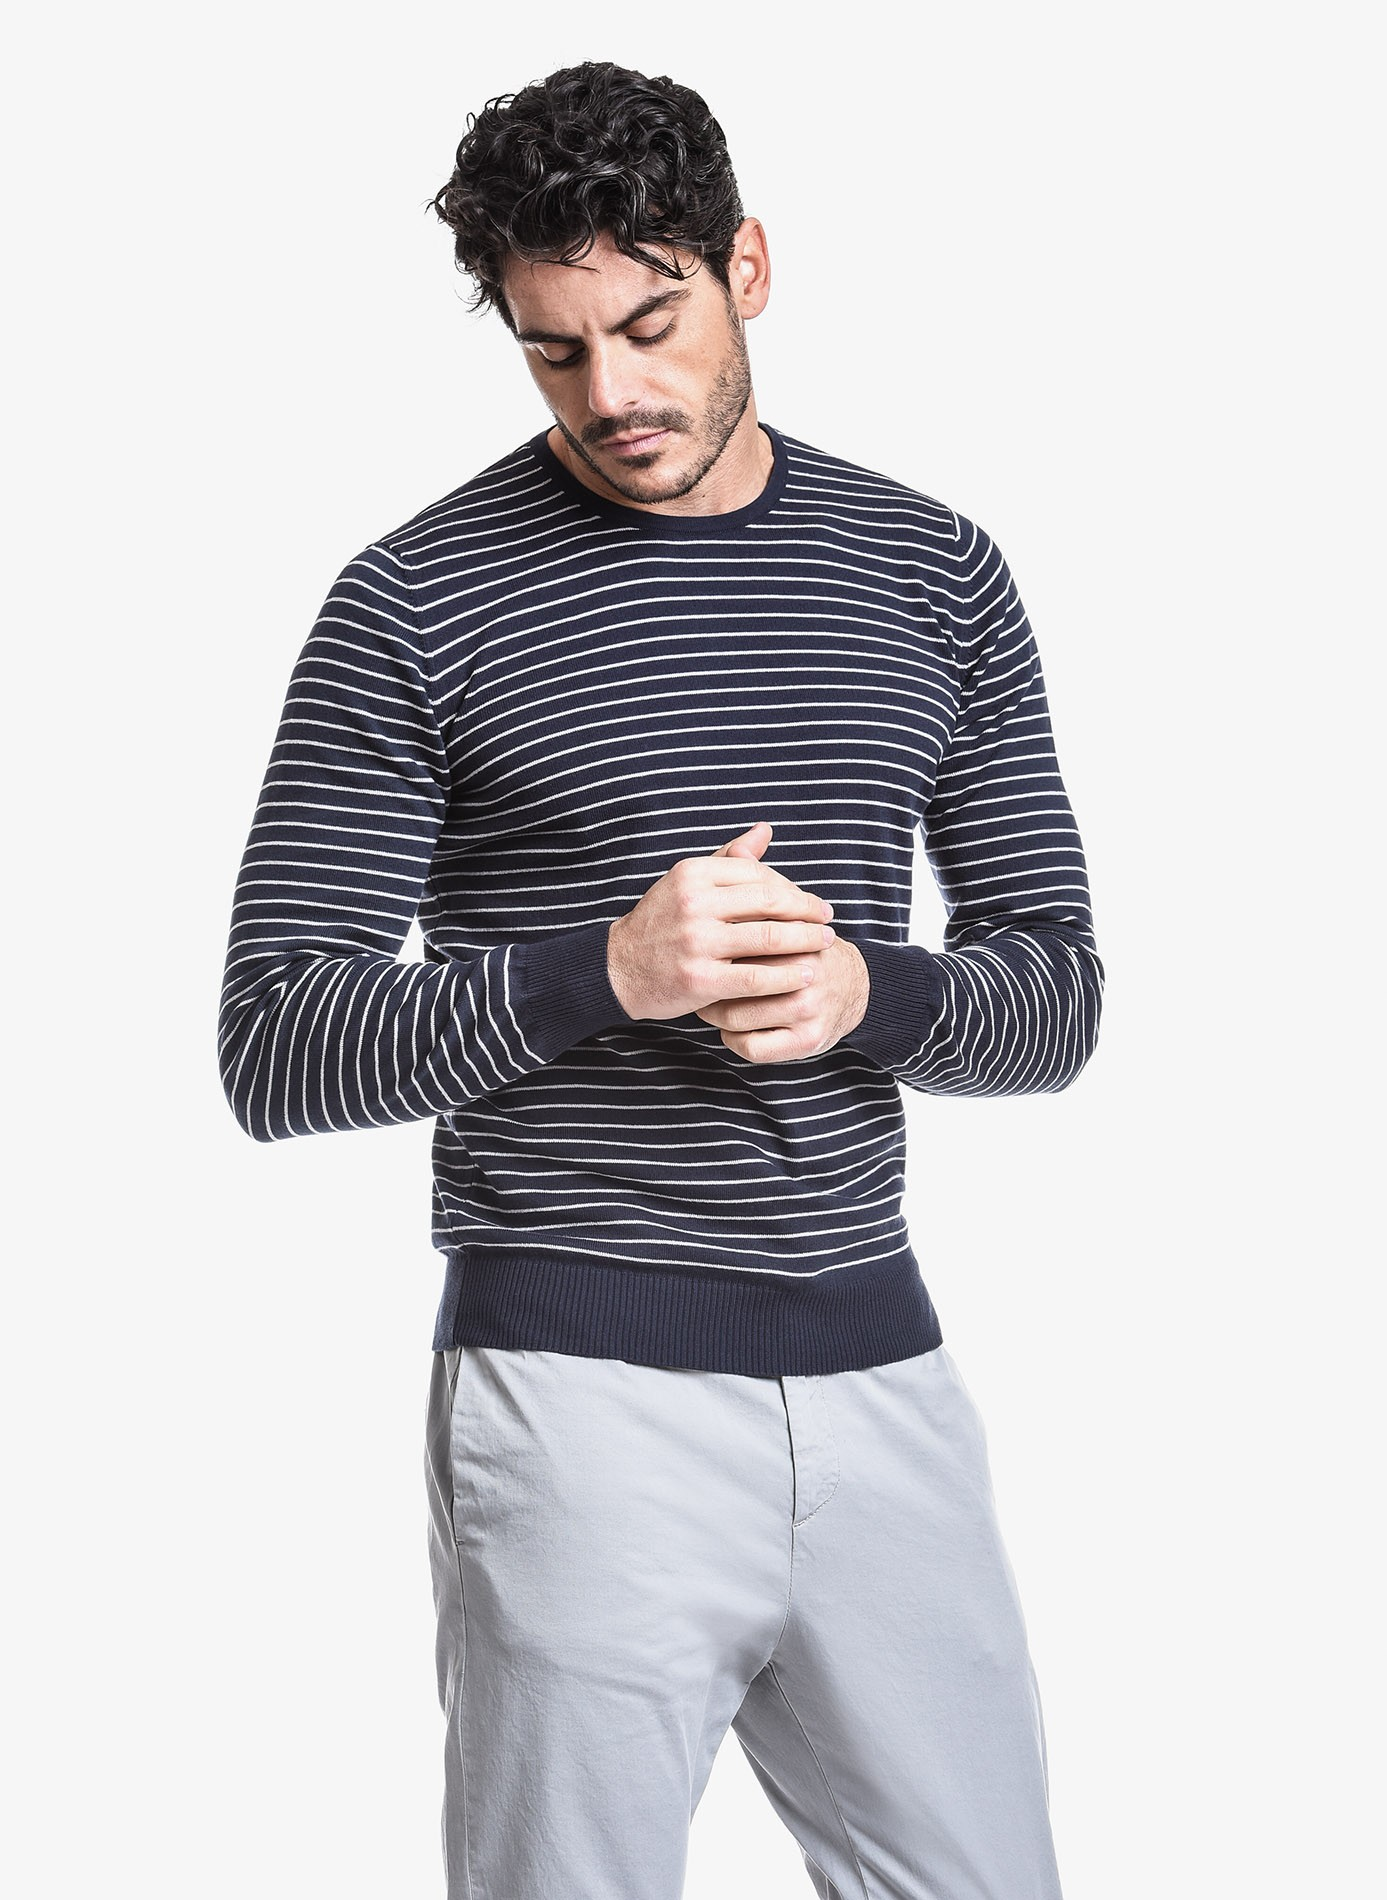 5b8670201e06 John Barritt man crew neck sweater, slim fit, cotton blend, color blue with  white stripes. Composition 100% cotton. Blue